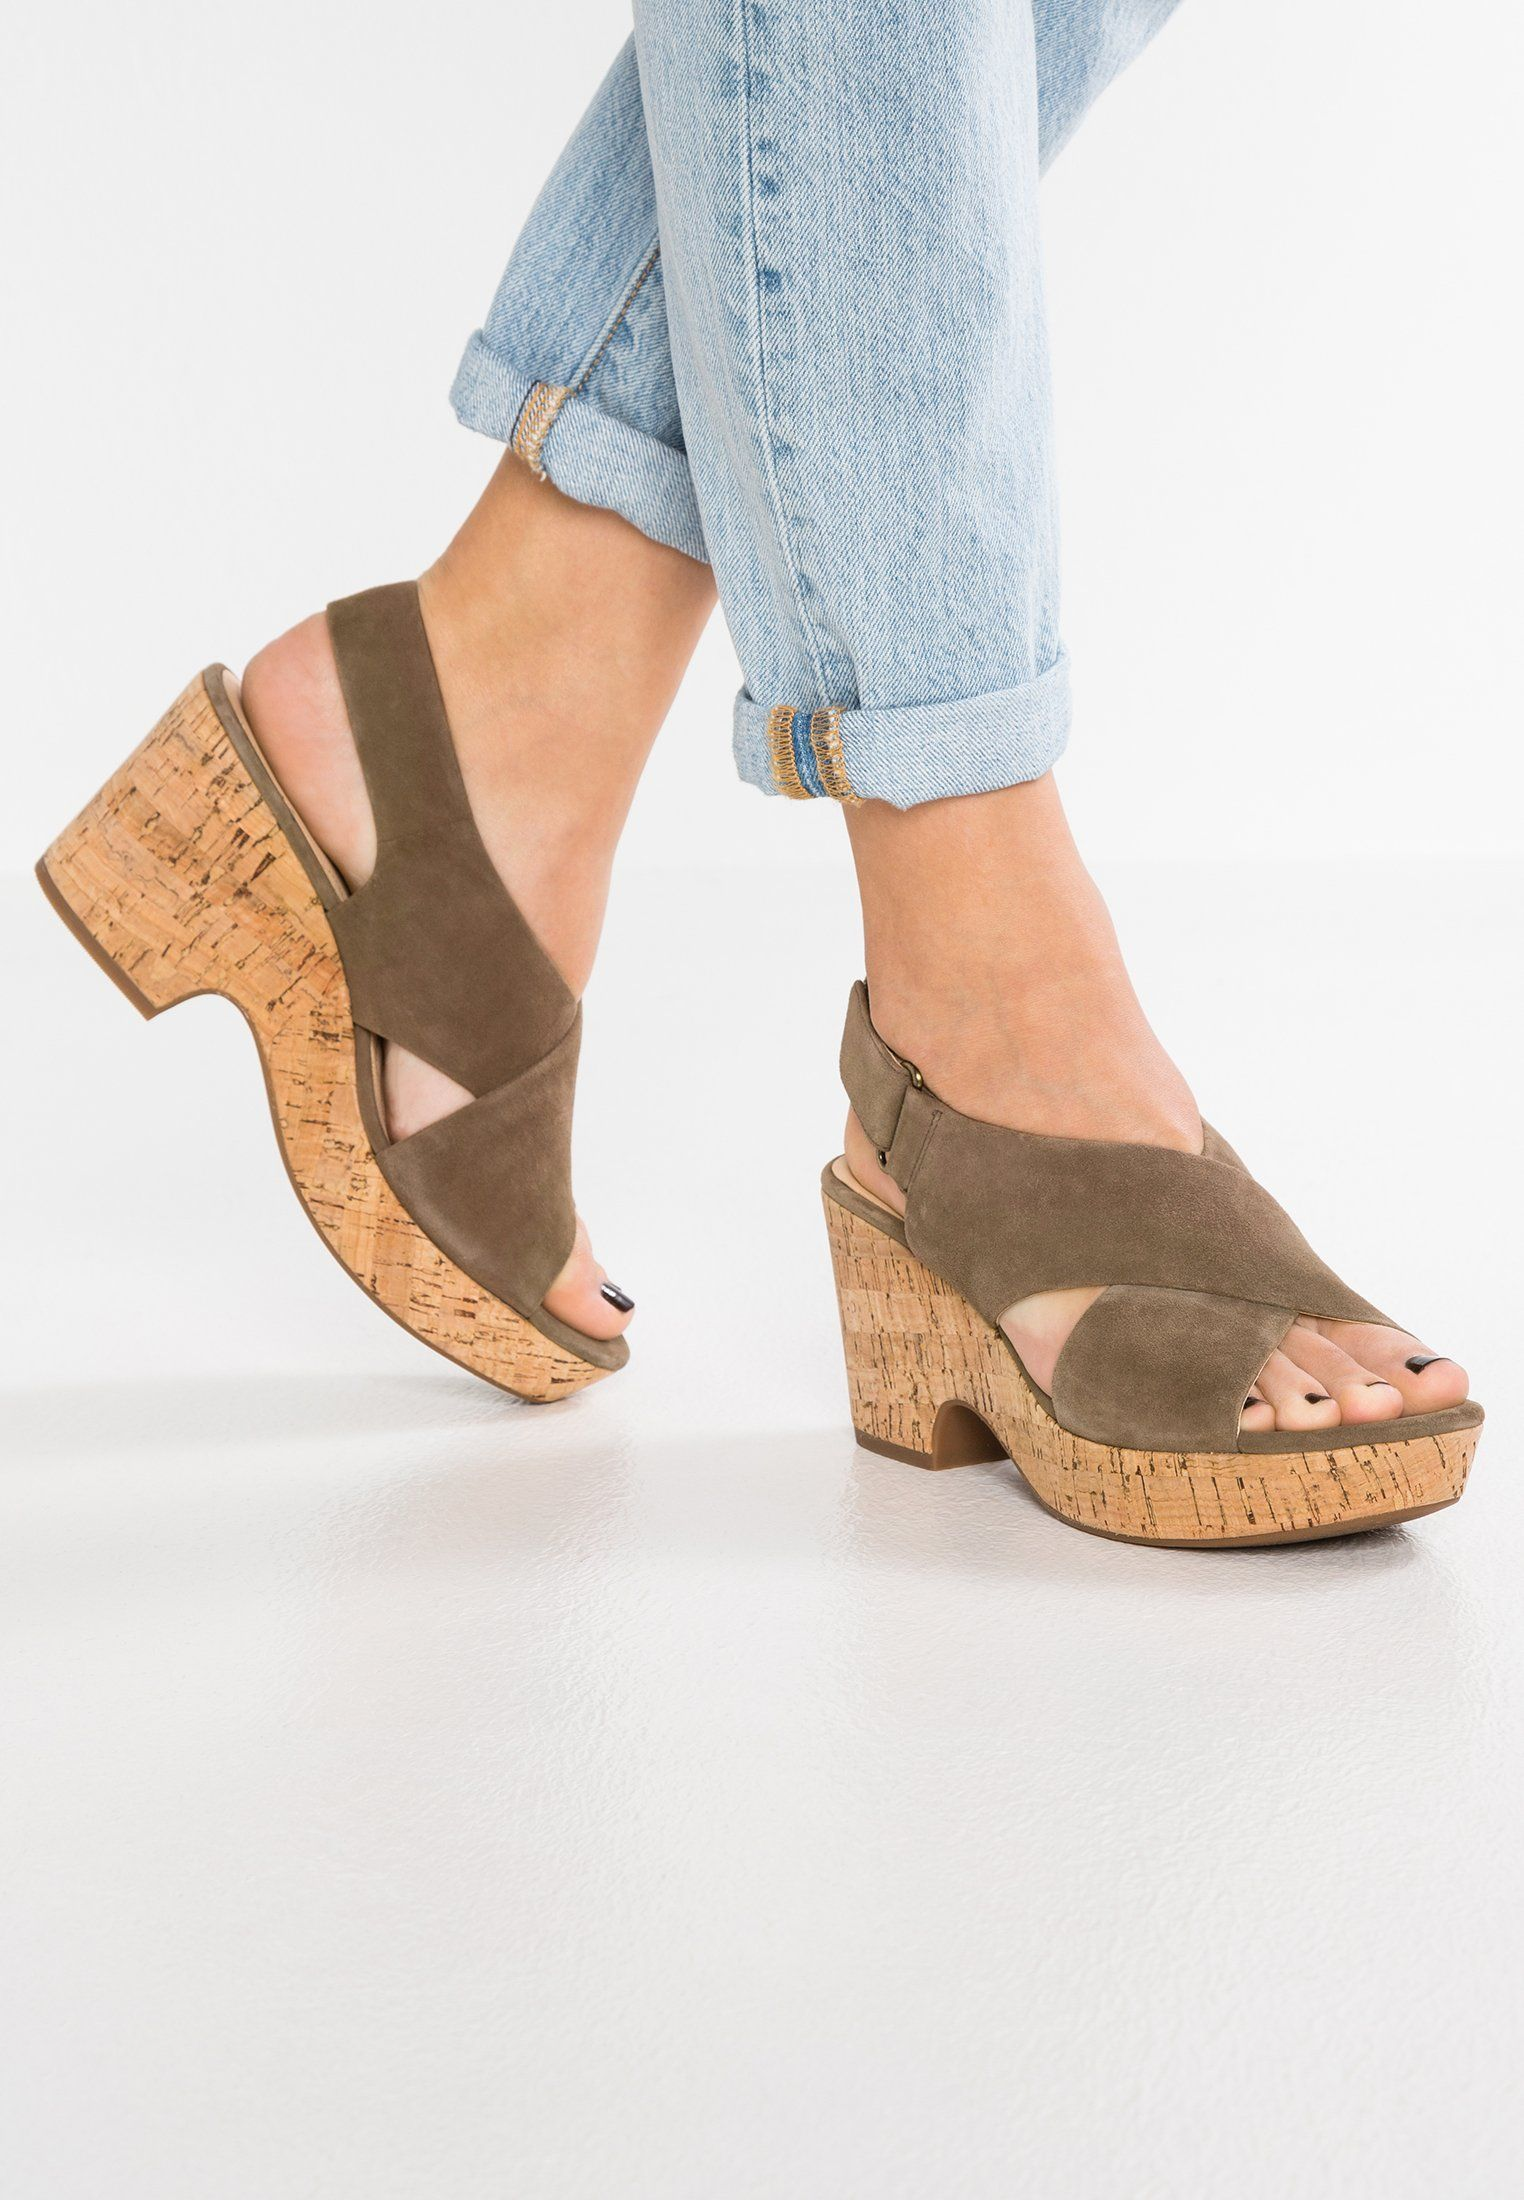 8953840c17 A chunky heel and a strappy, sinuous upper mark this chic open-toe sandal  style. An ankle strap provides a secure, adjustable fit, and its full grain  ...